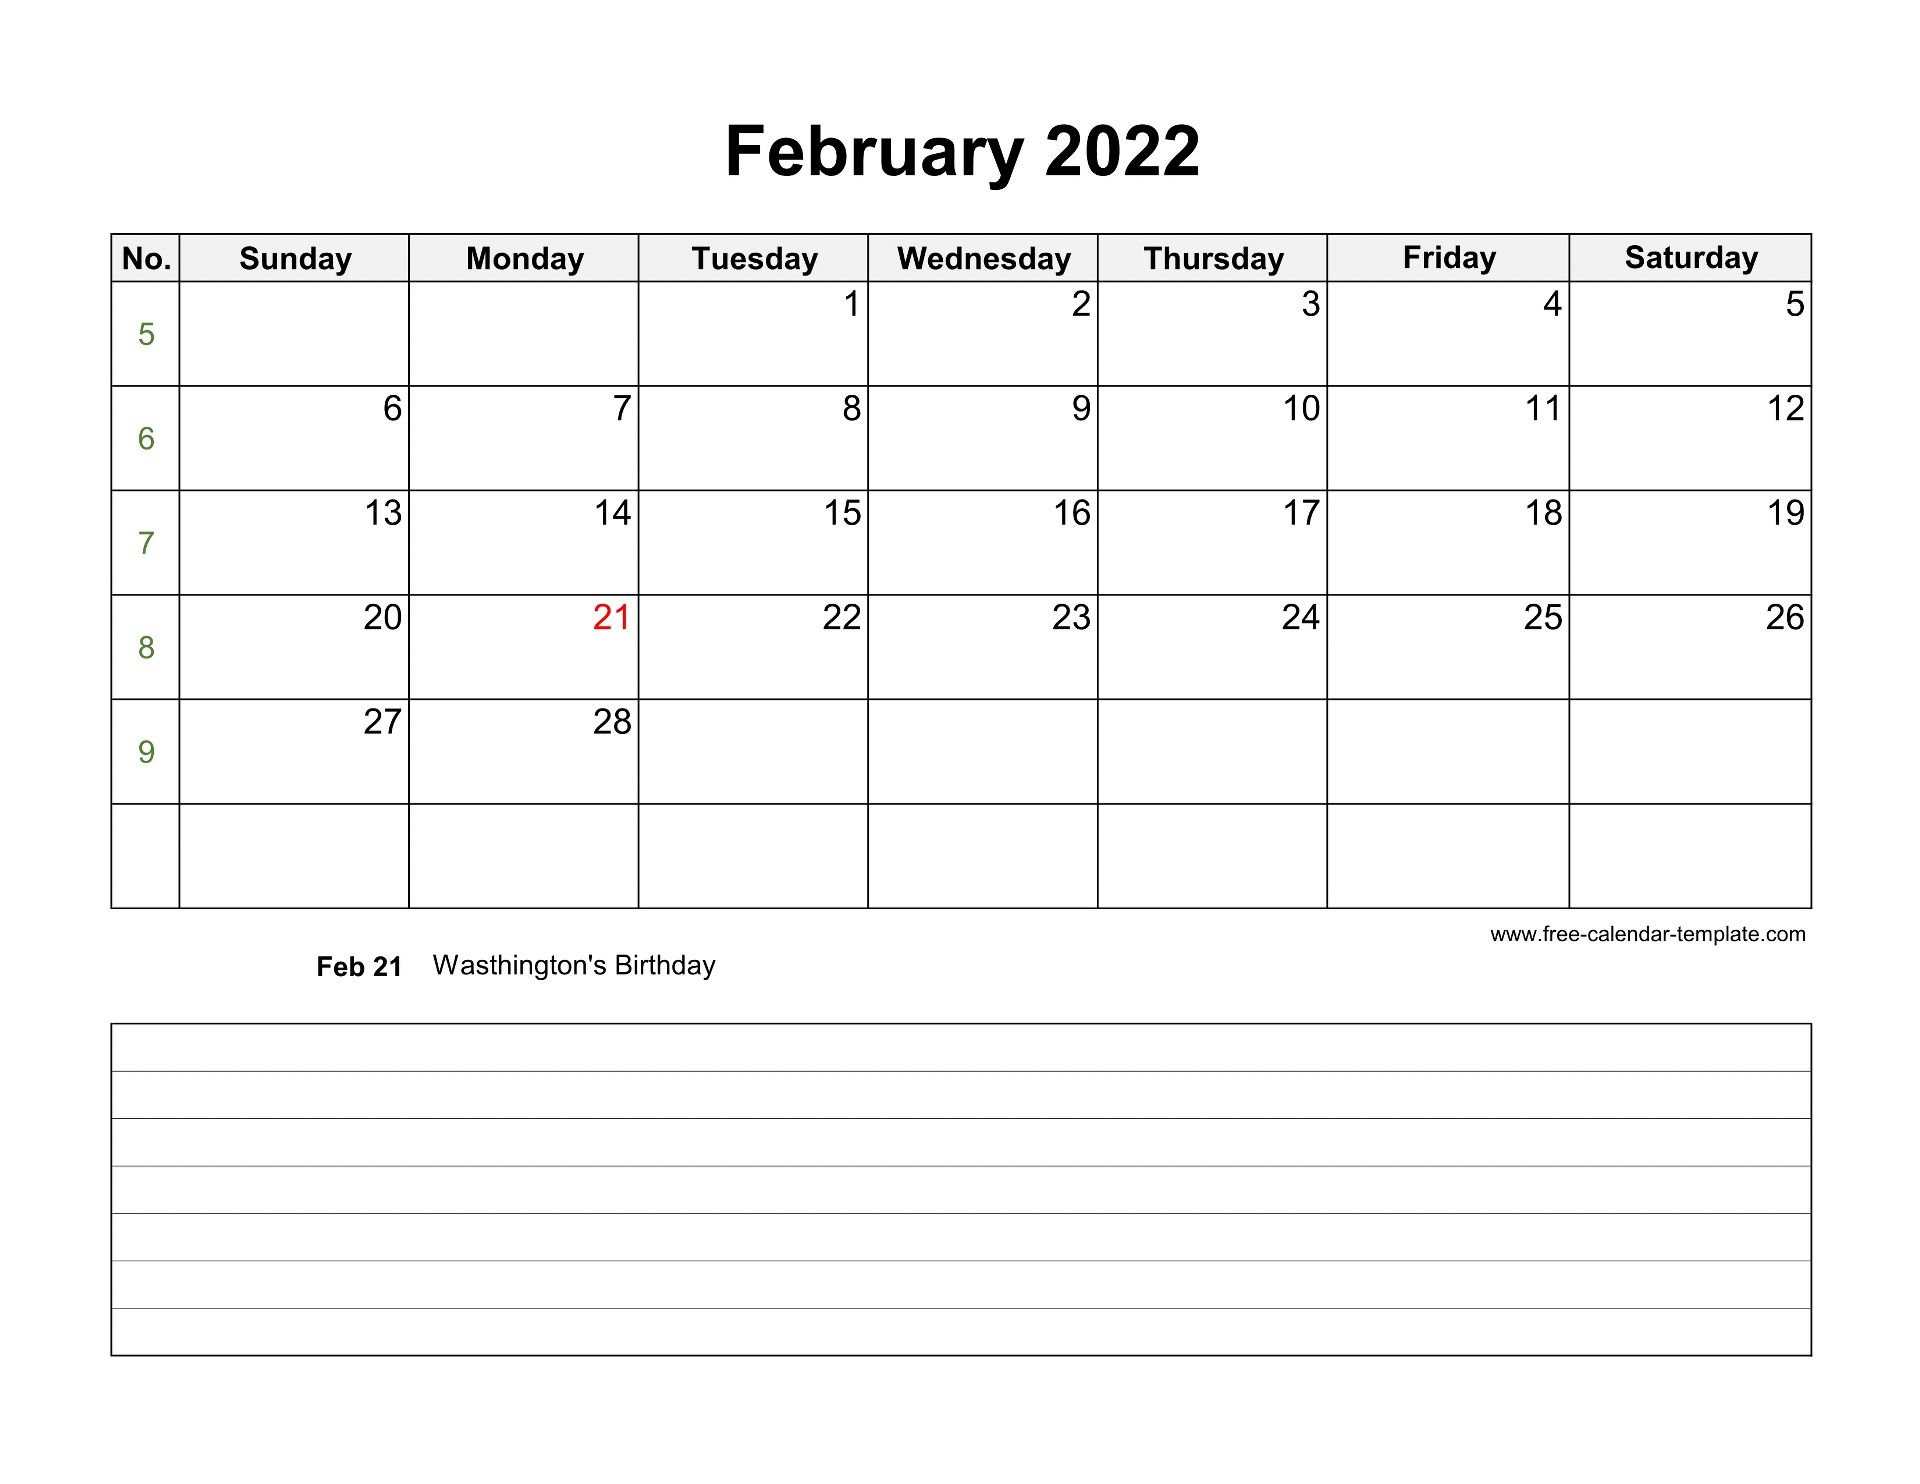 2022 Printable February Calendar With Space For Appointments Horizontal Free Calendar Template Com